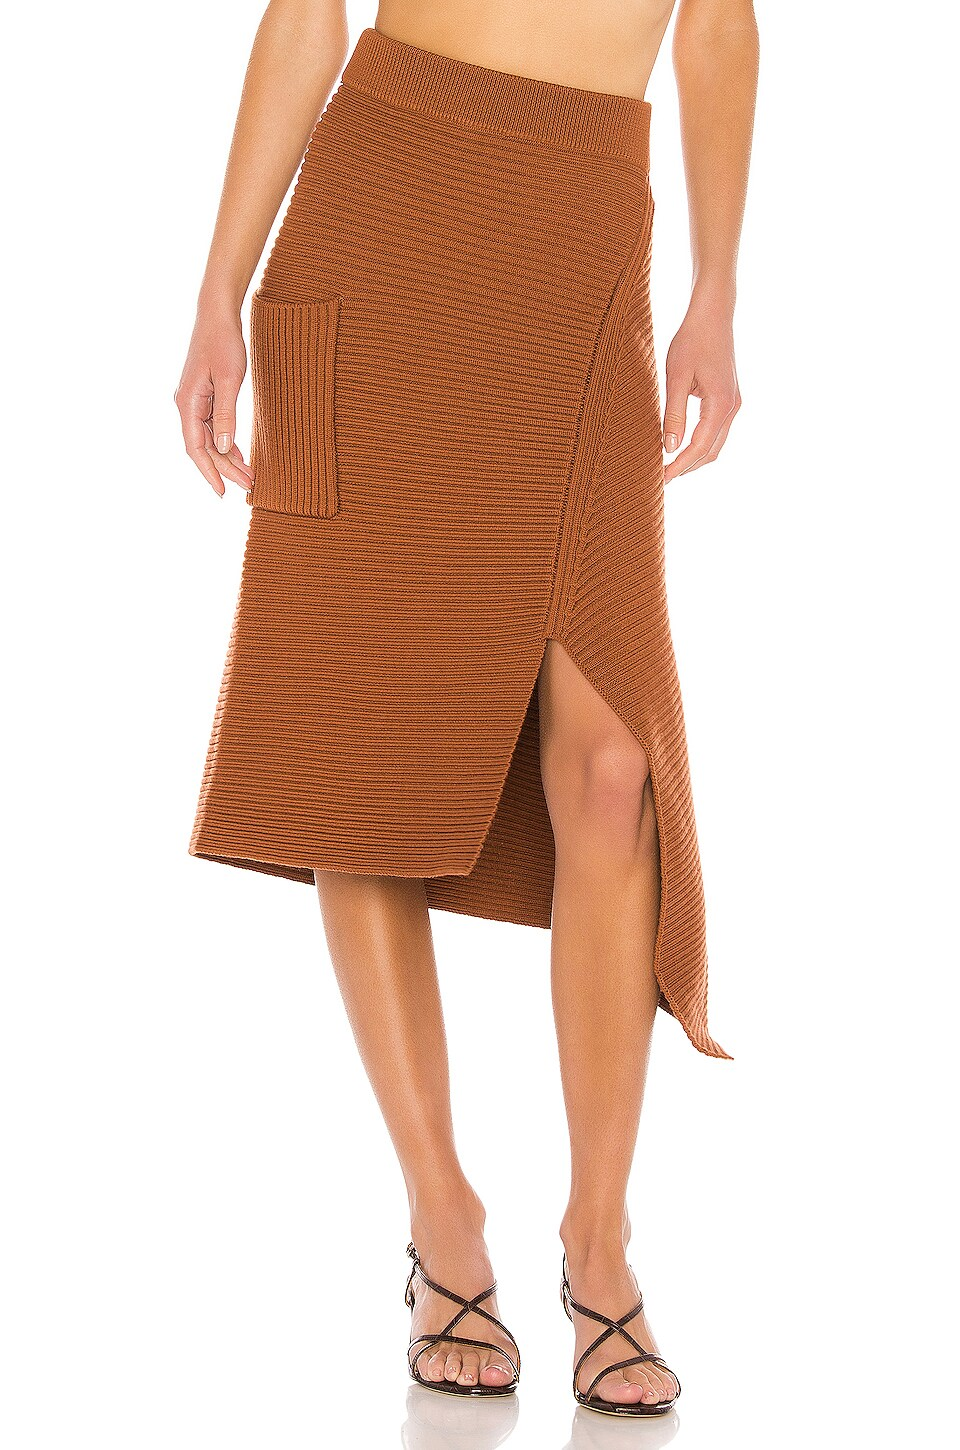 Tibi Merino Rib Sweater Origami Slit Skirt in Camel